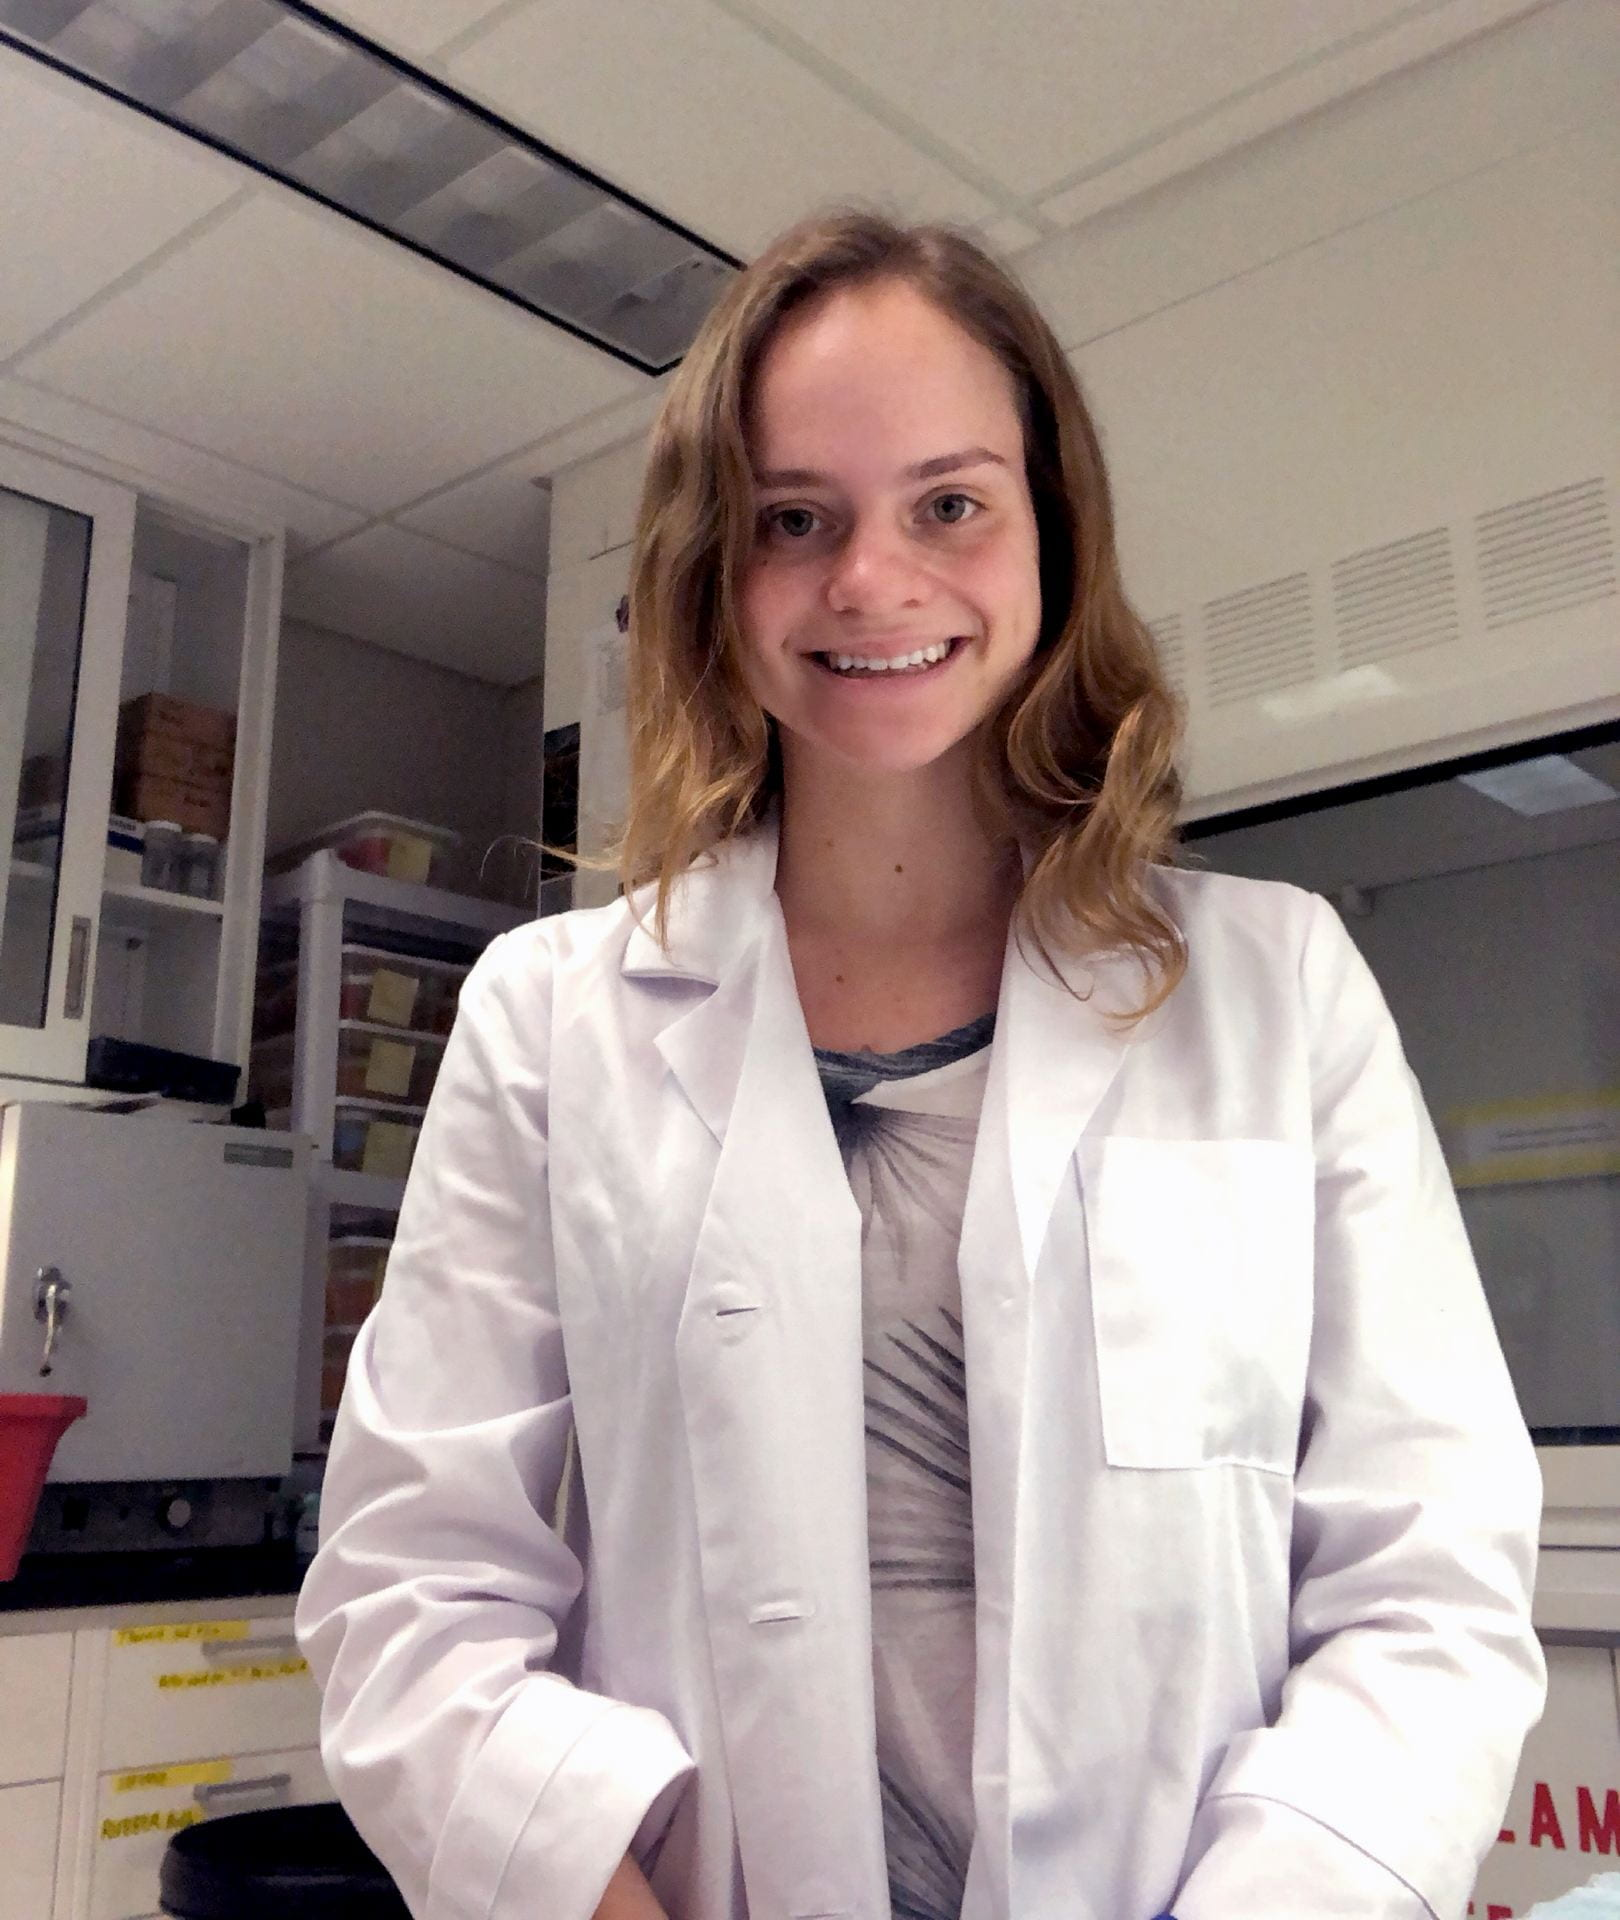 undergrad in lab coat